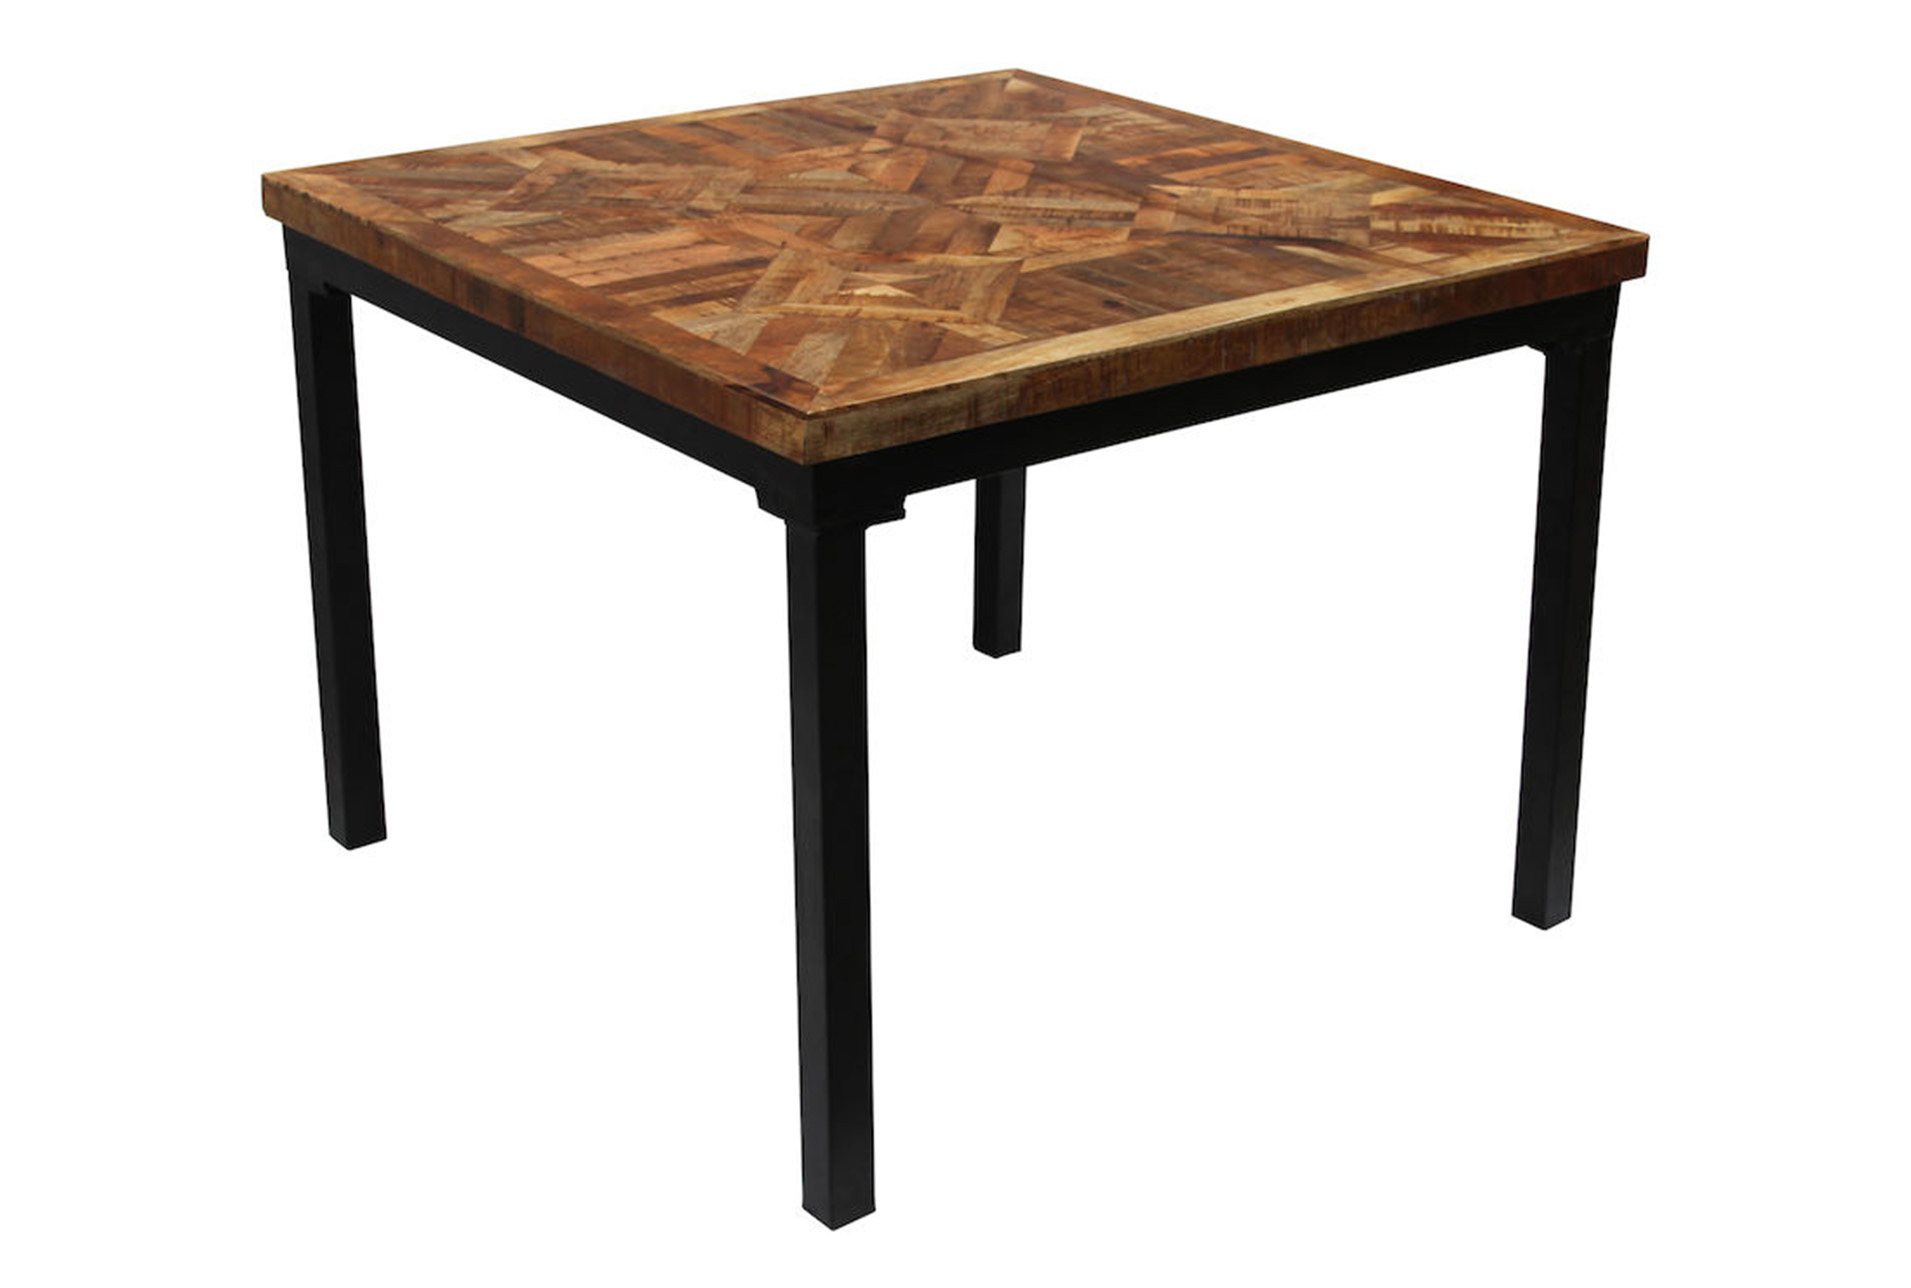 Layered Wood Small Square Dining Table (Qty: 1) Has Been Successfully Added  To Your Cart.